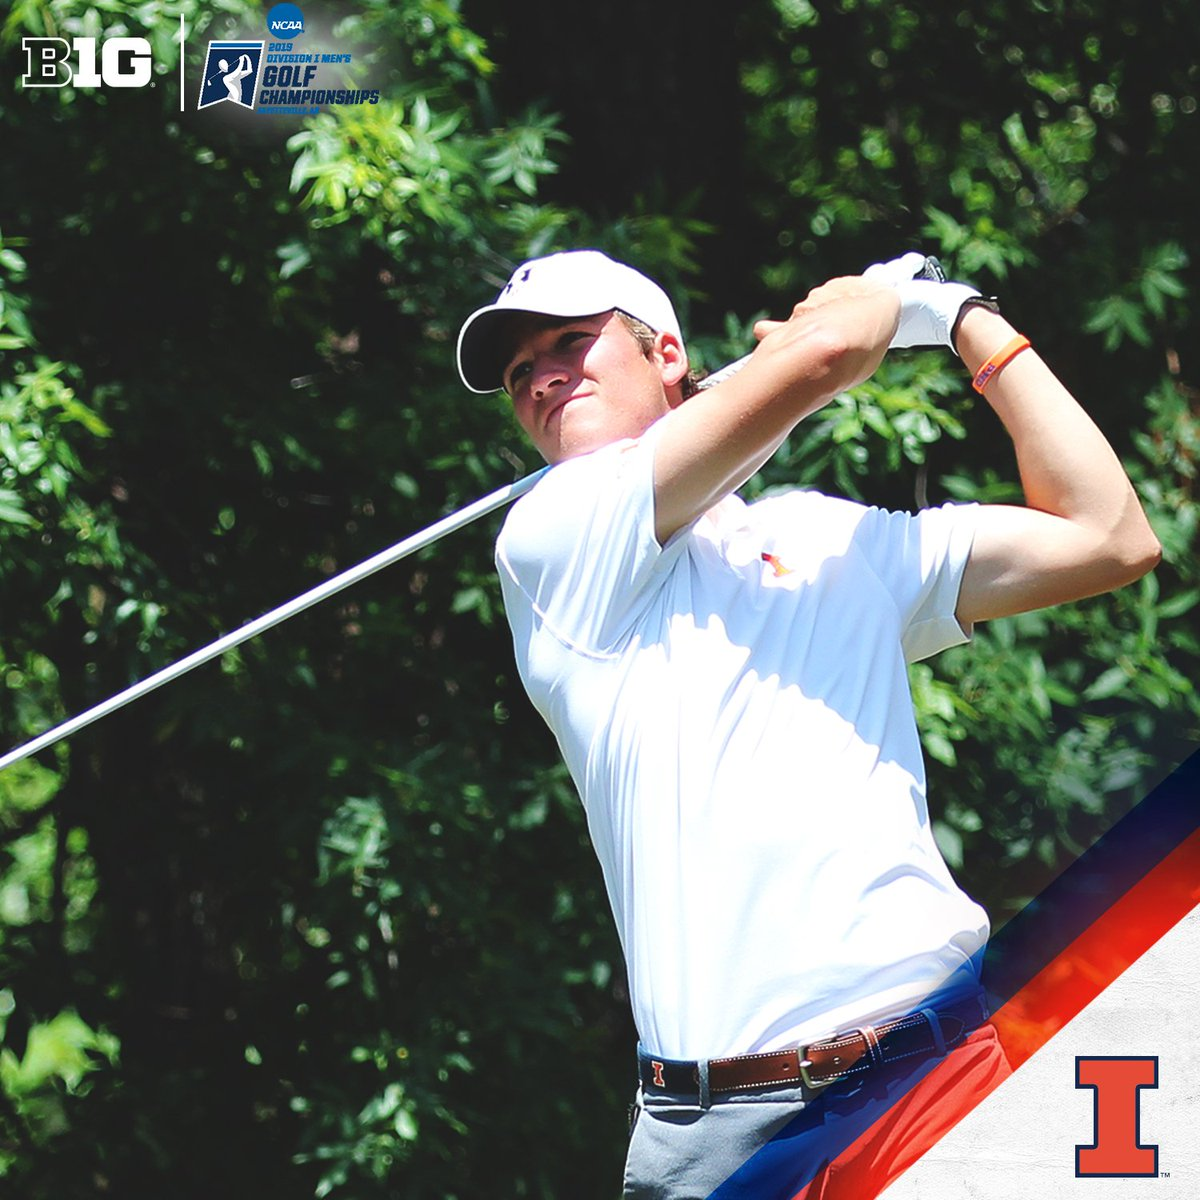 2019 #B1GMGolf Champs, @IlliniMGolf advances to the @NCAA Championships for the 12th straight season after finishing the regional tournament 25-under par total - becoming one of just three schools to have won four straight Regional Championships.